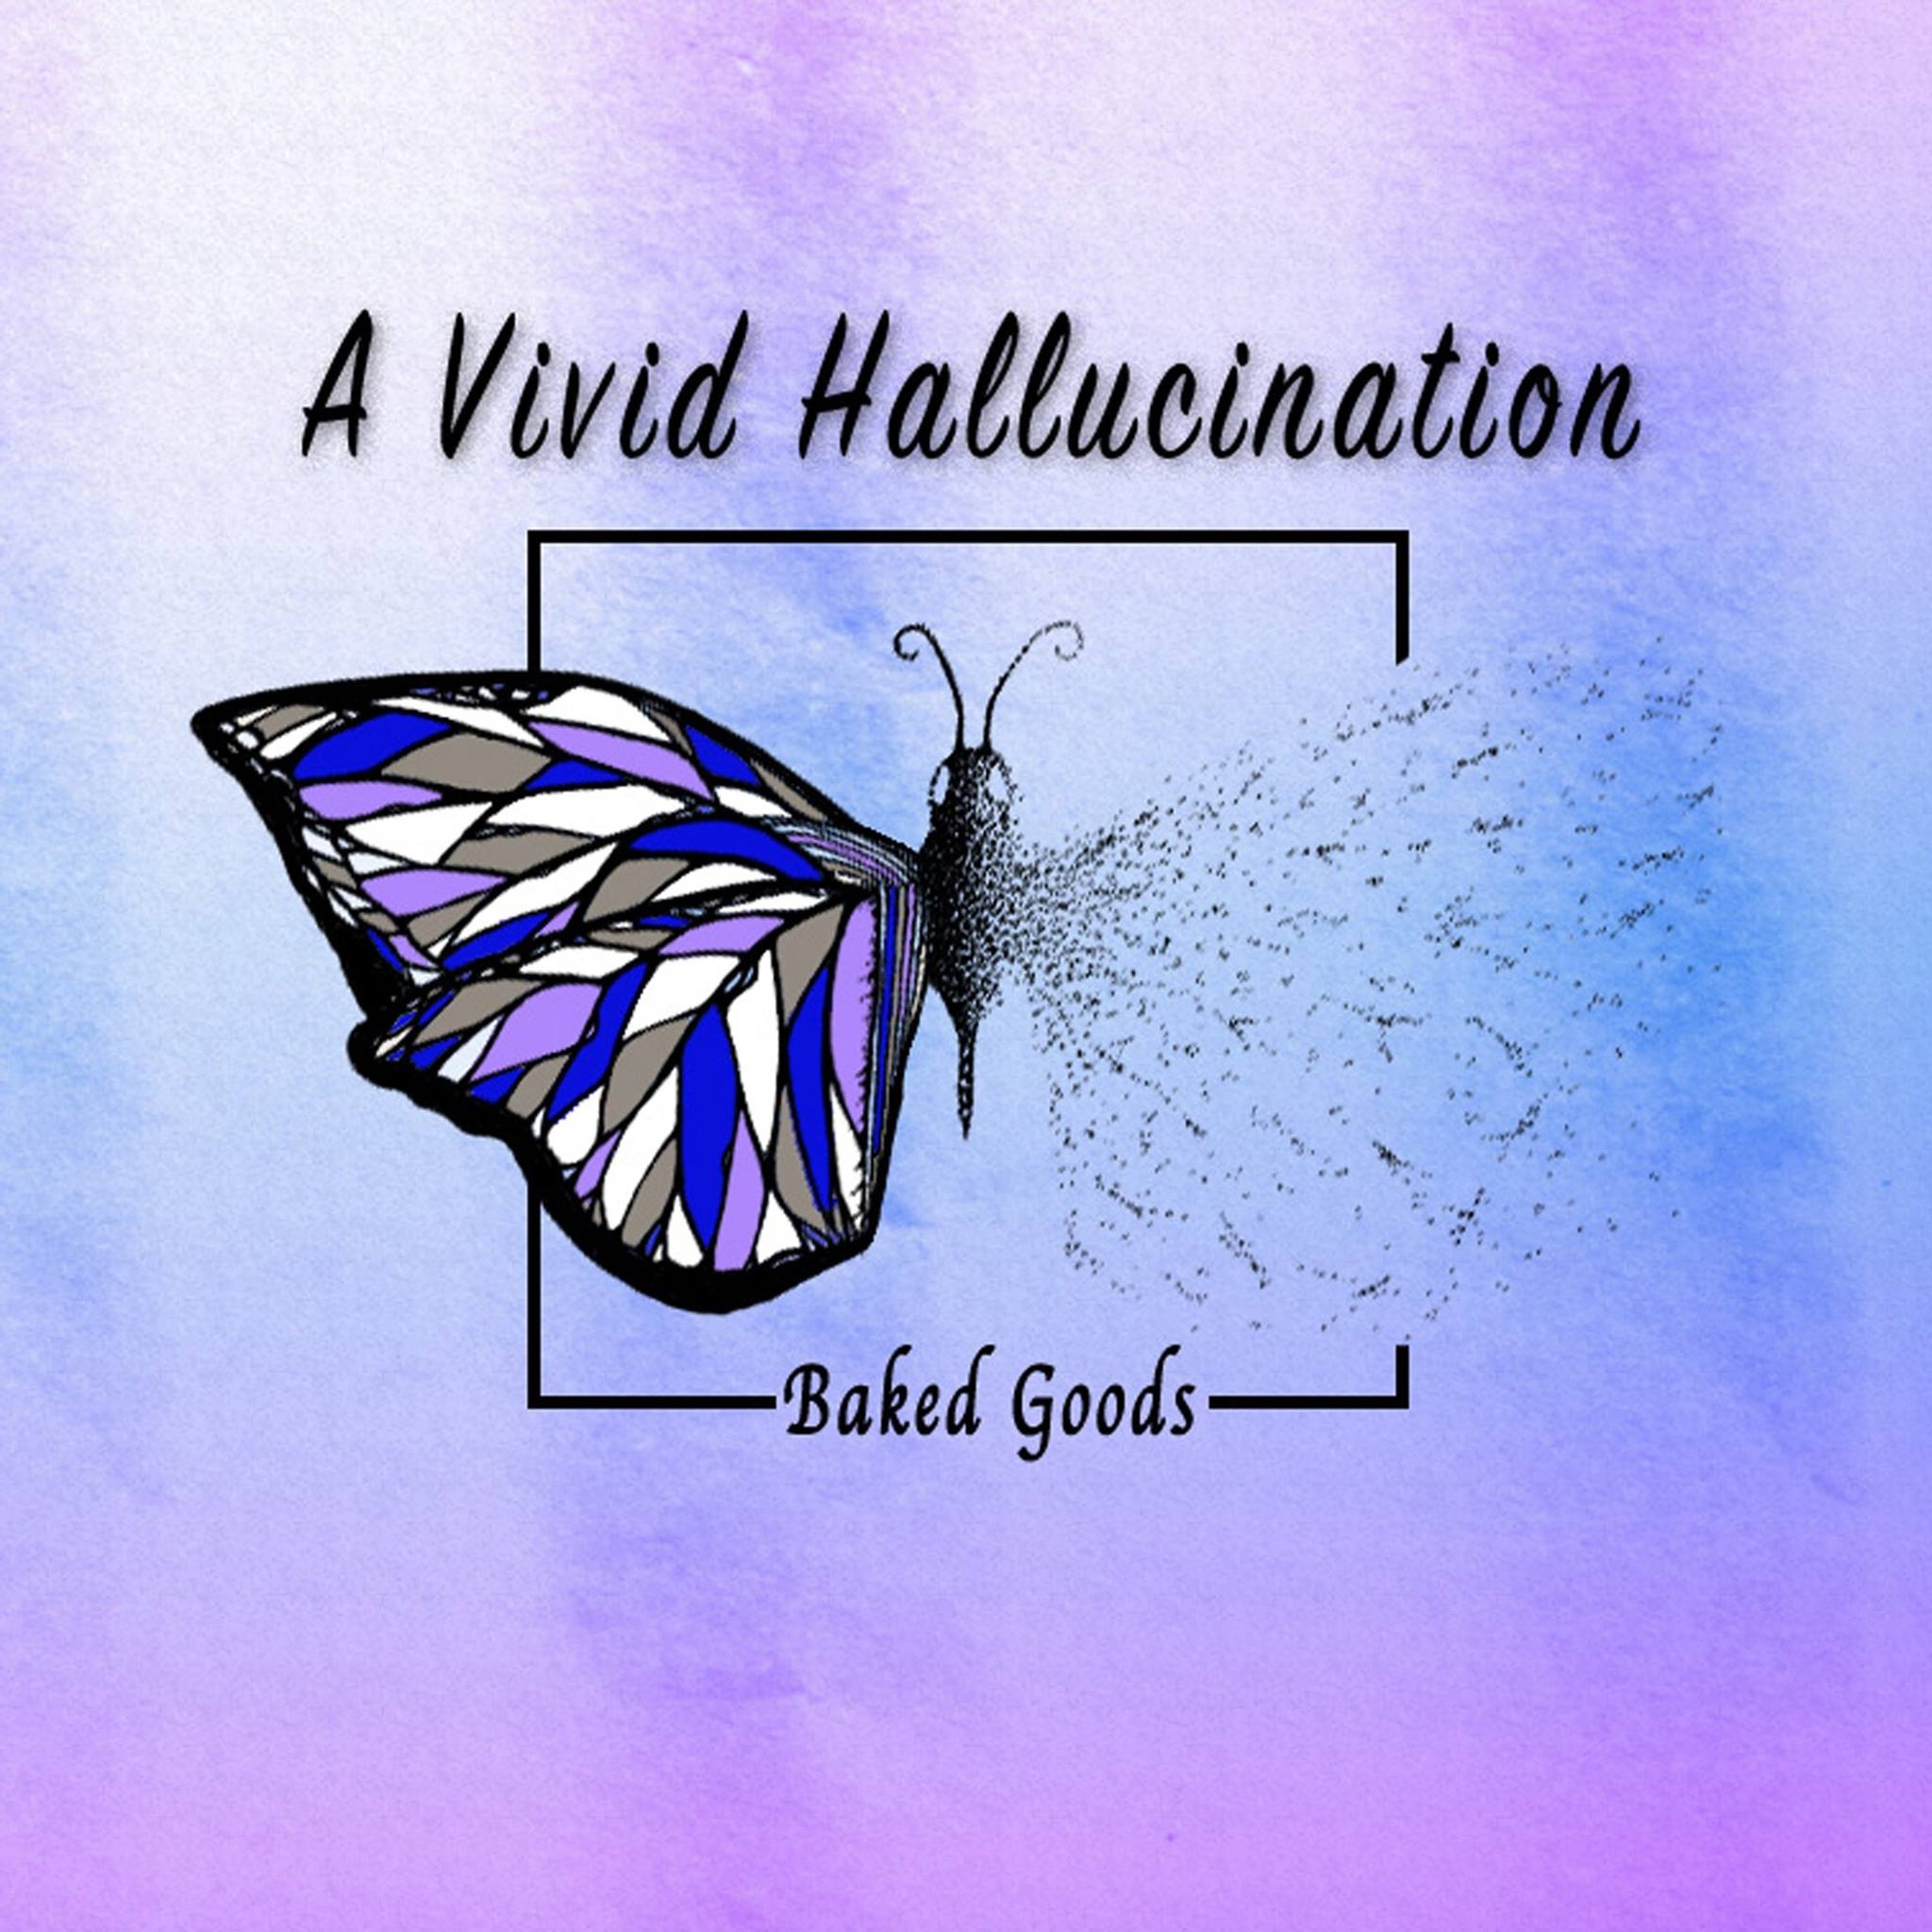 A Vivid Hallucination  is a sonic journey that accentuates a slight separation from reality, whether that be through anxiety, mental illness, or whimsical daydreaming. Each of these songs focus on the voices both inside one's head and outside. The lyrics and orchestrations attempt to capture the innate contradictions of mental health issues and present them in a way that the listener can feel, wrestle with, and enjoy. Led by booming drums and a captivating saxophone, Baked Goods mixes together a concoction of technical performance, excitingly eccentric rhythms, and stimulating lyrics that makes  A Vivid Hallucination  a record every music-lover can enjoy. The album was engineered, mixed, and produced by frequent collaborater James Meslin (Dream Theater). It was recorded under the guide of Richie Cannata (Billy Joel) in his studio, Cove City Sound Studios.